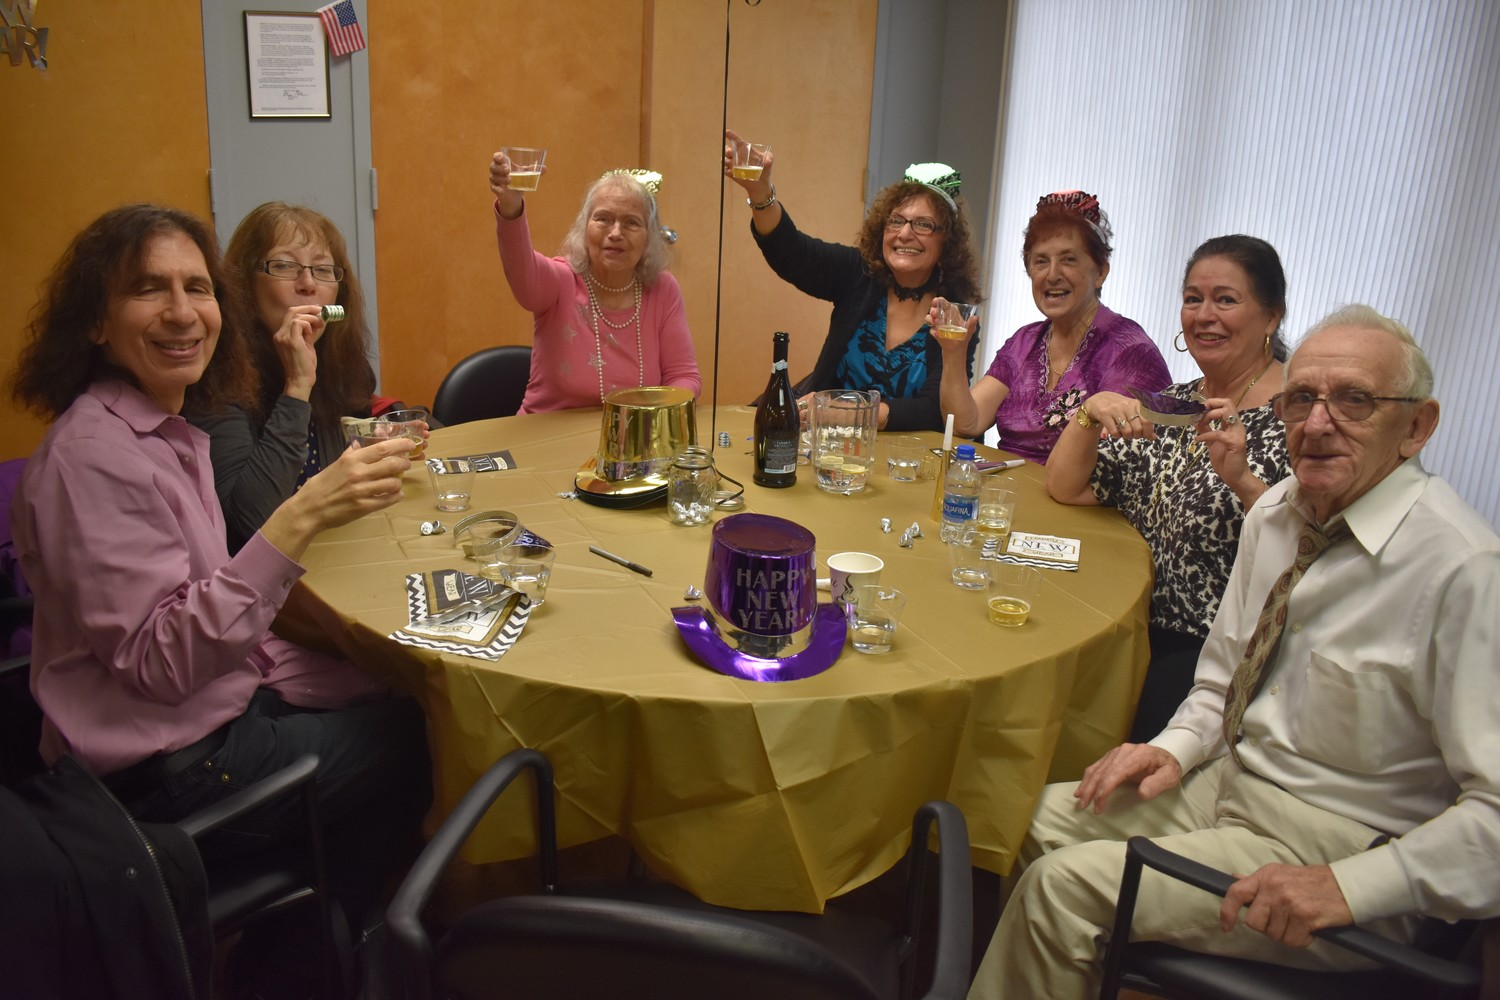 Sandel Center seniors raised a toast  after a countdown to what signified midnight on New Year's Eve.